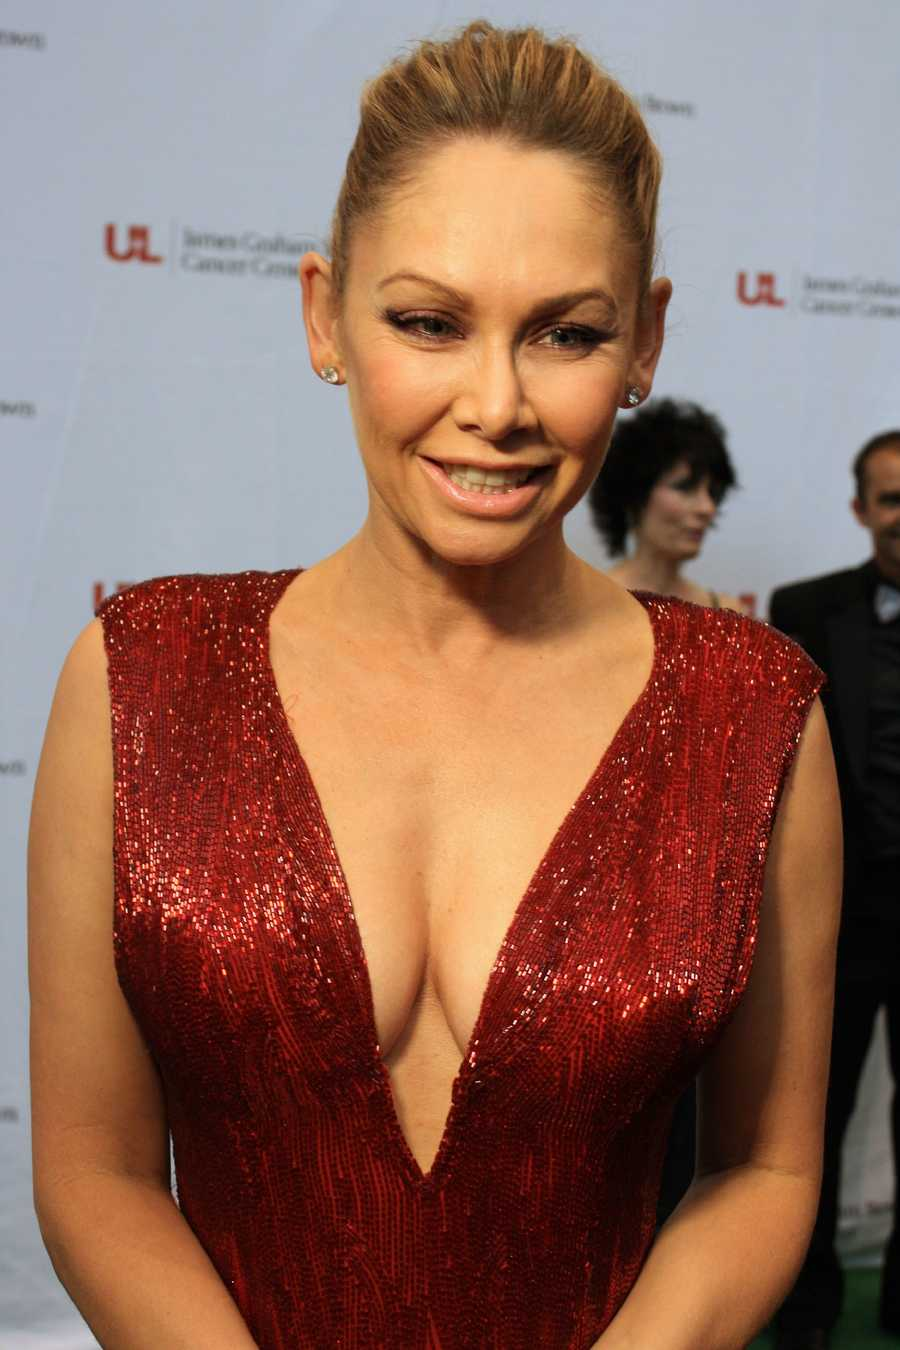 Kym Johnson, Dancing with the Stars